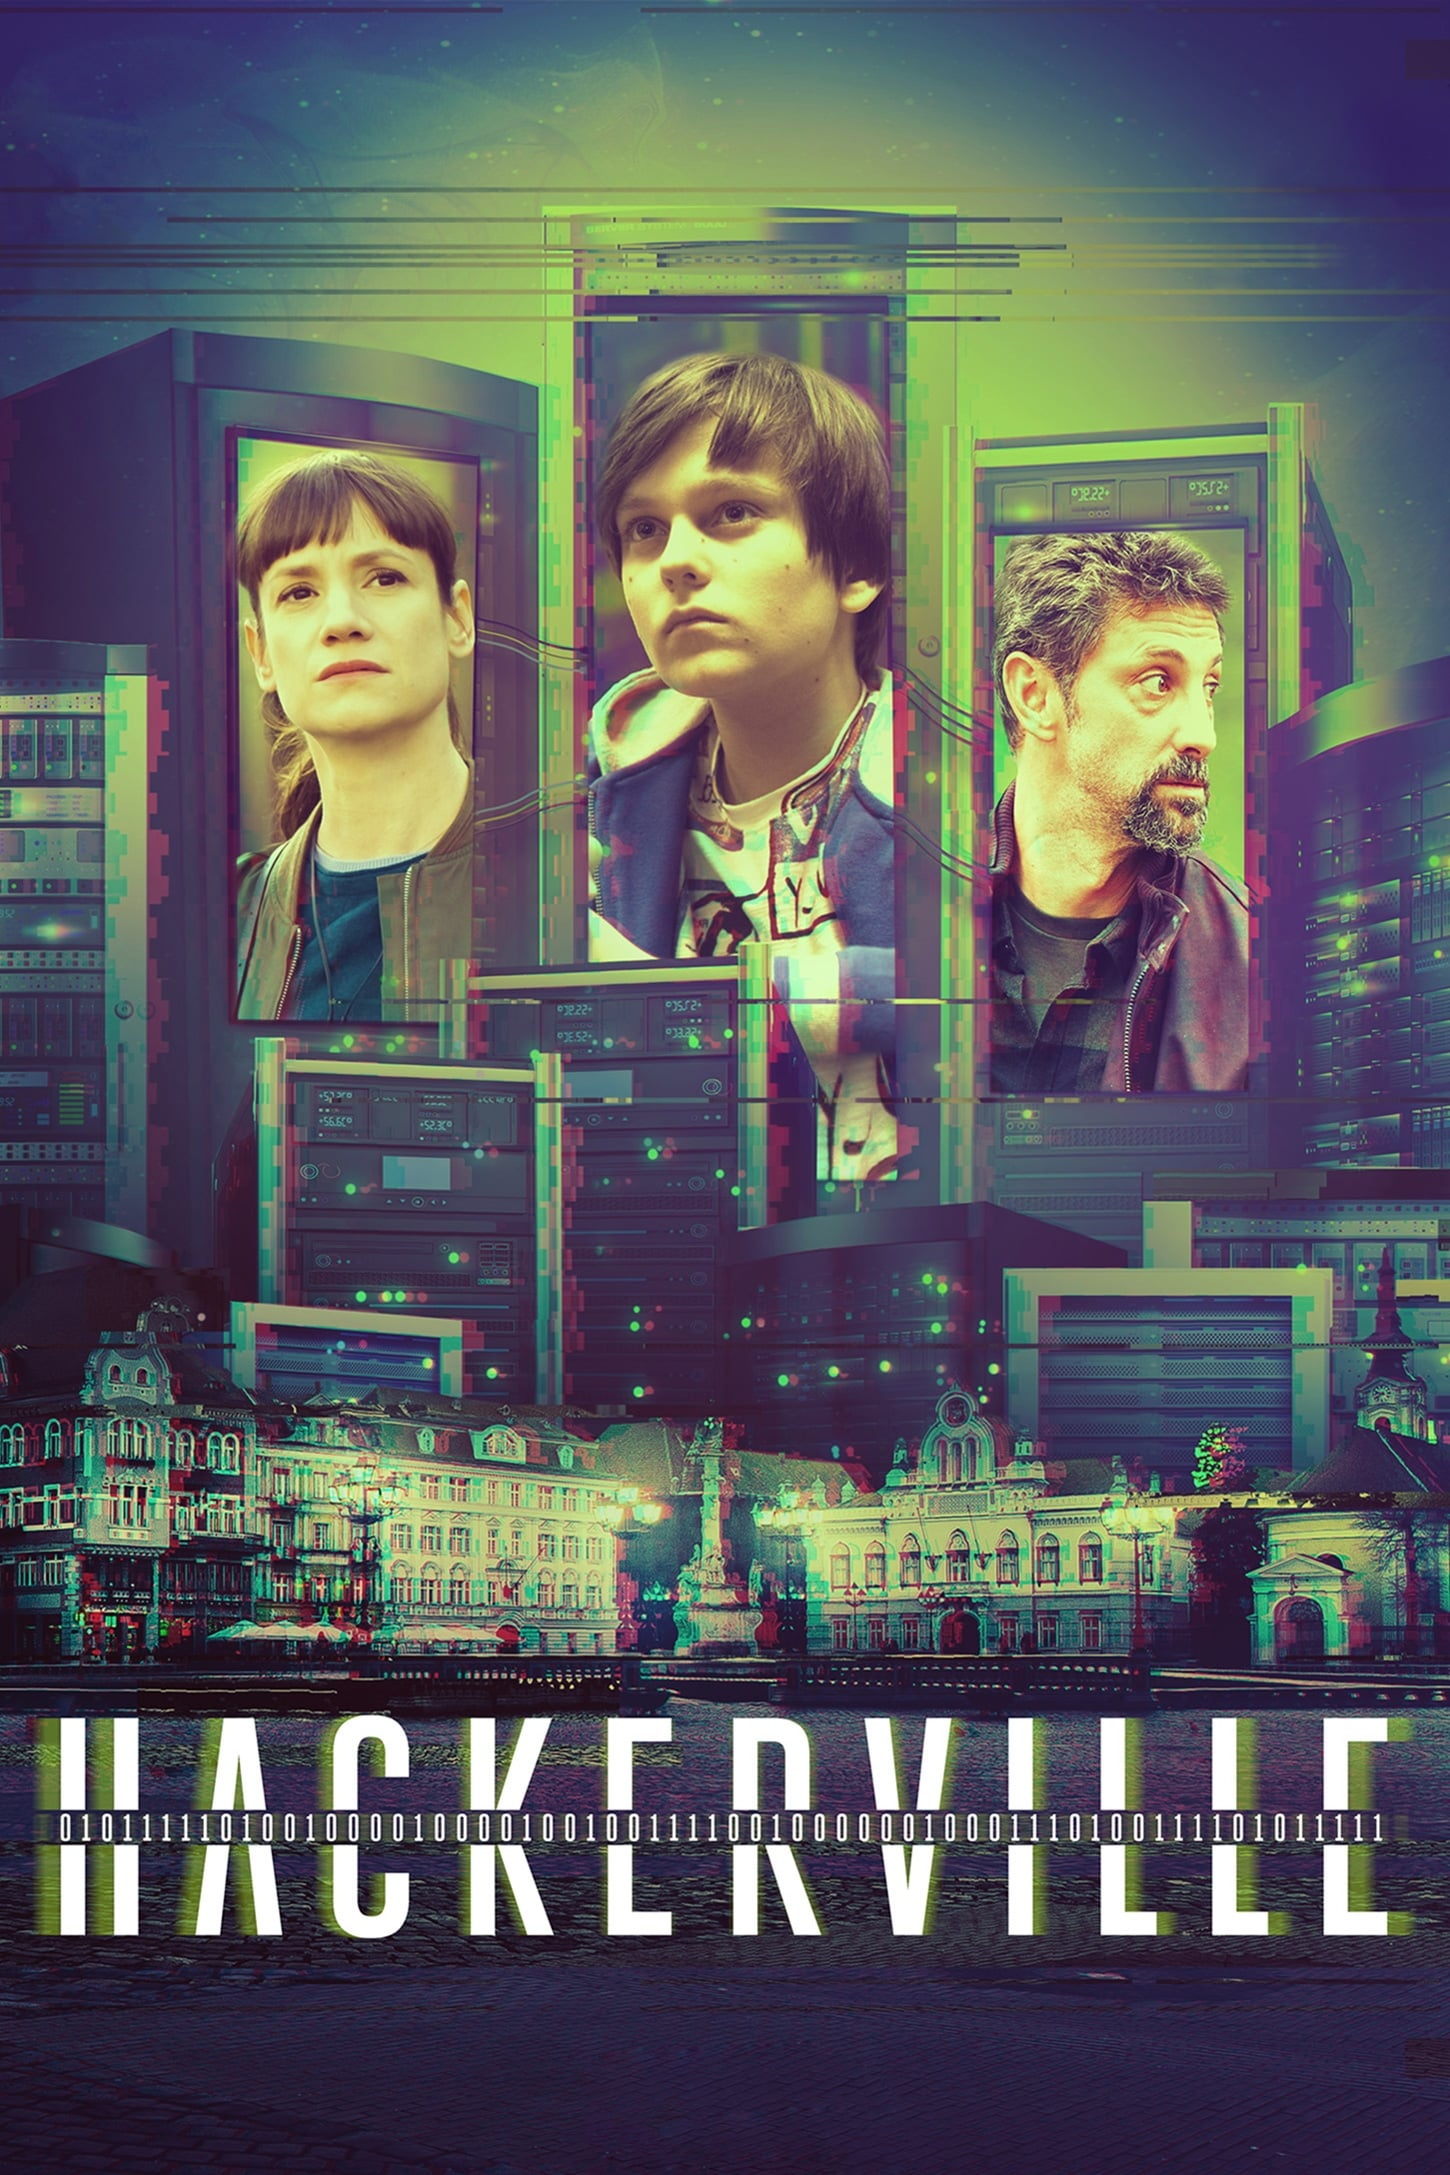 Hackerville Poster